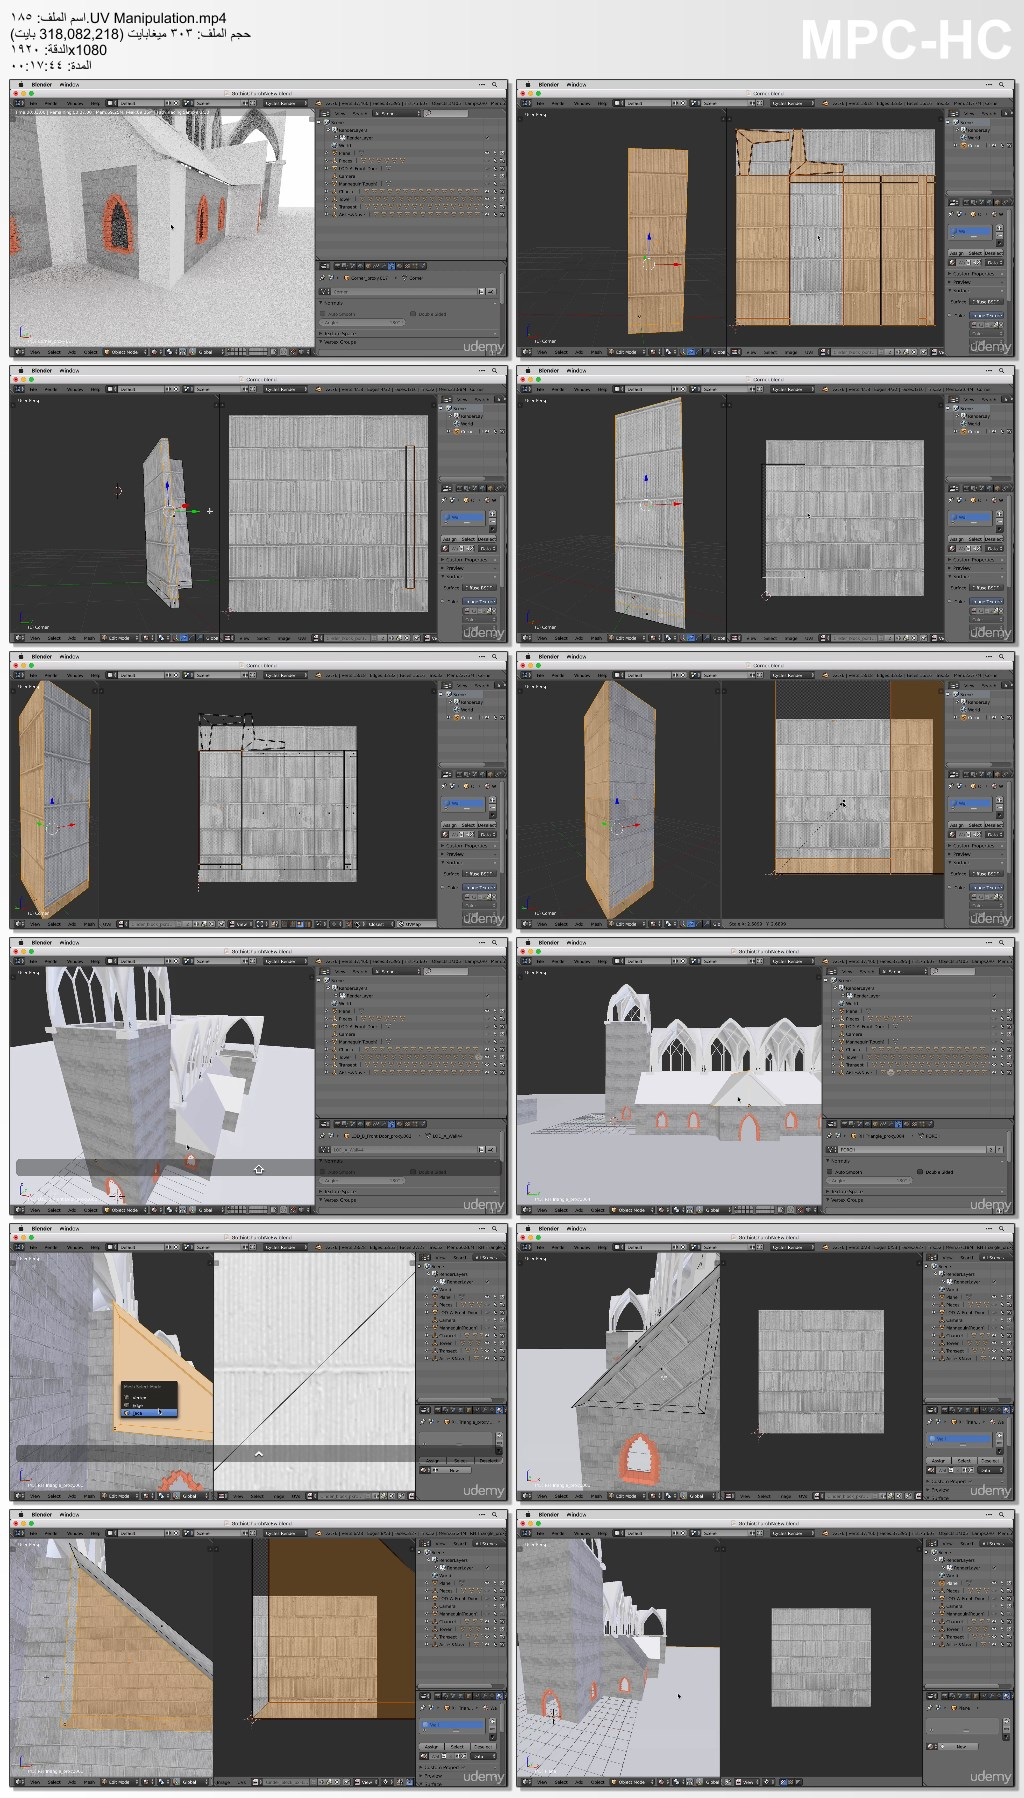 learn 3d modelling - the complete blender creator course updated